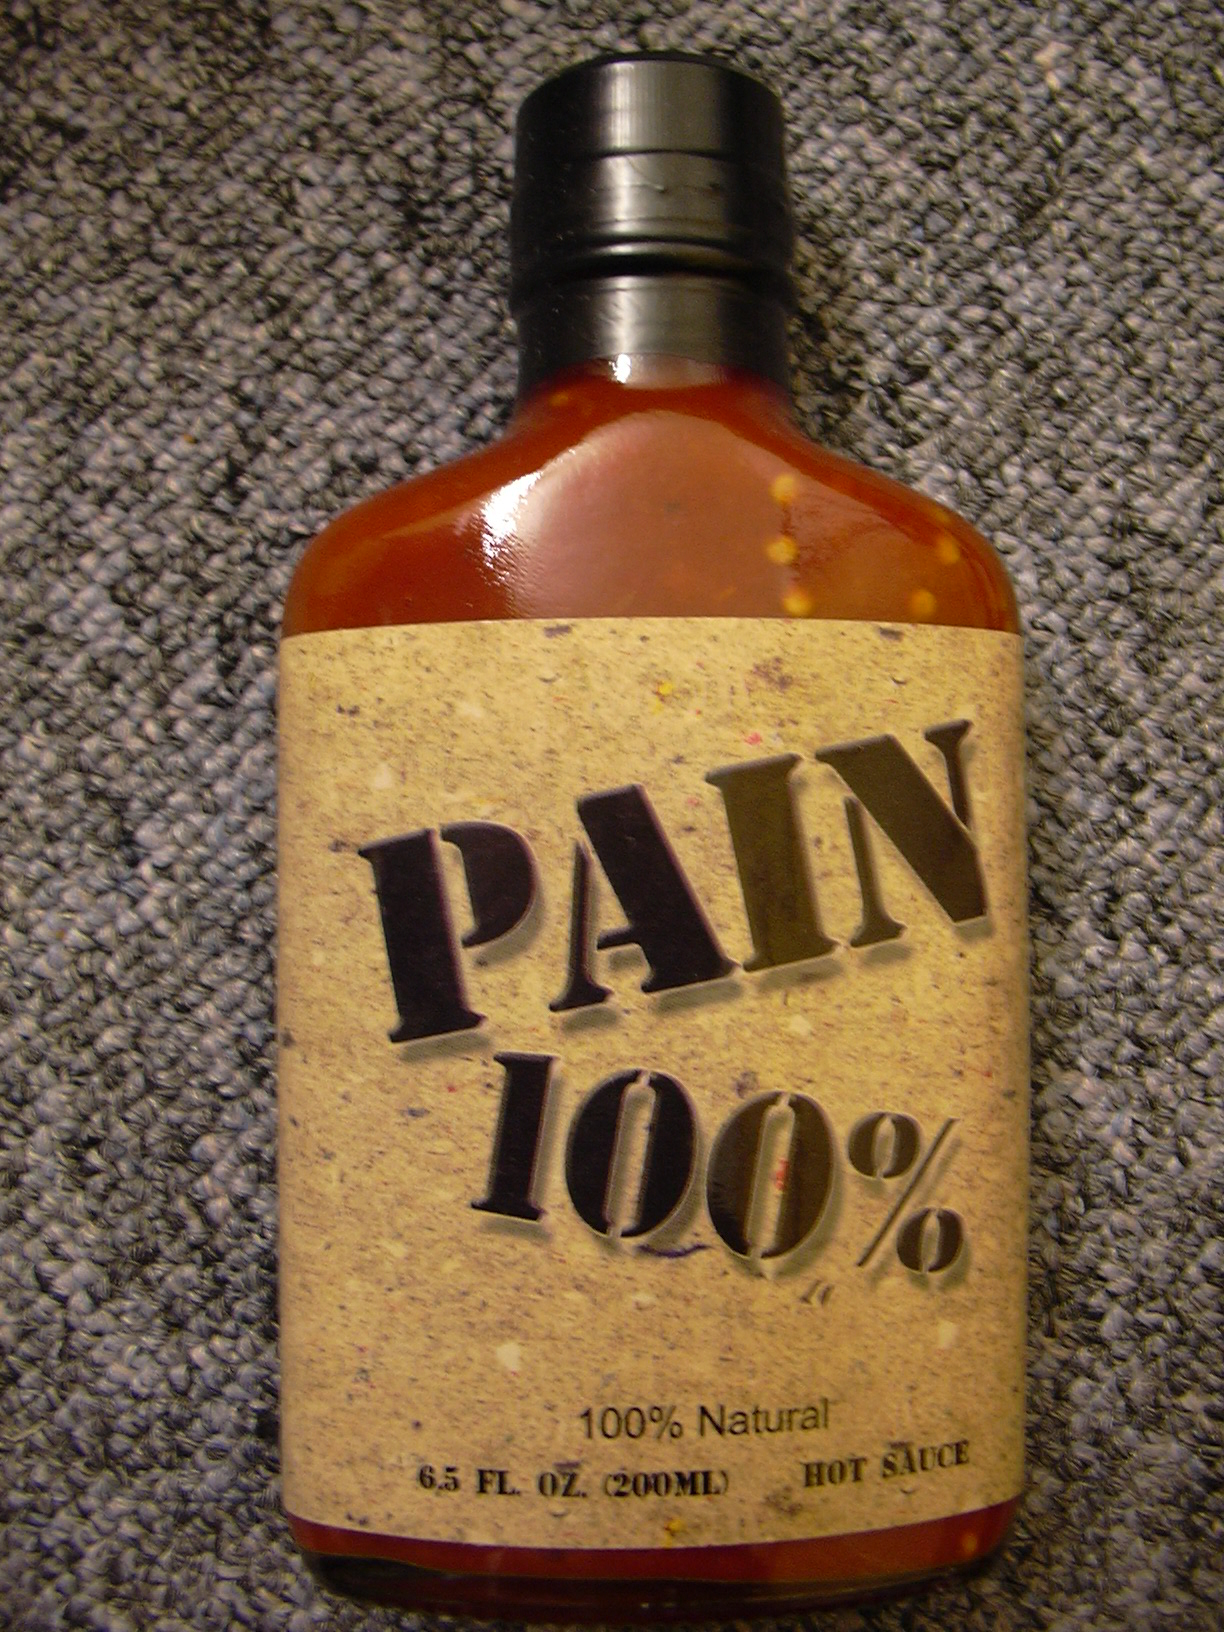 Hot_Sauce-Pain_100_percent.jpg